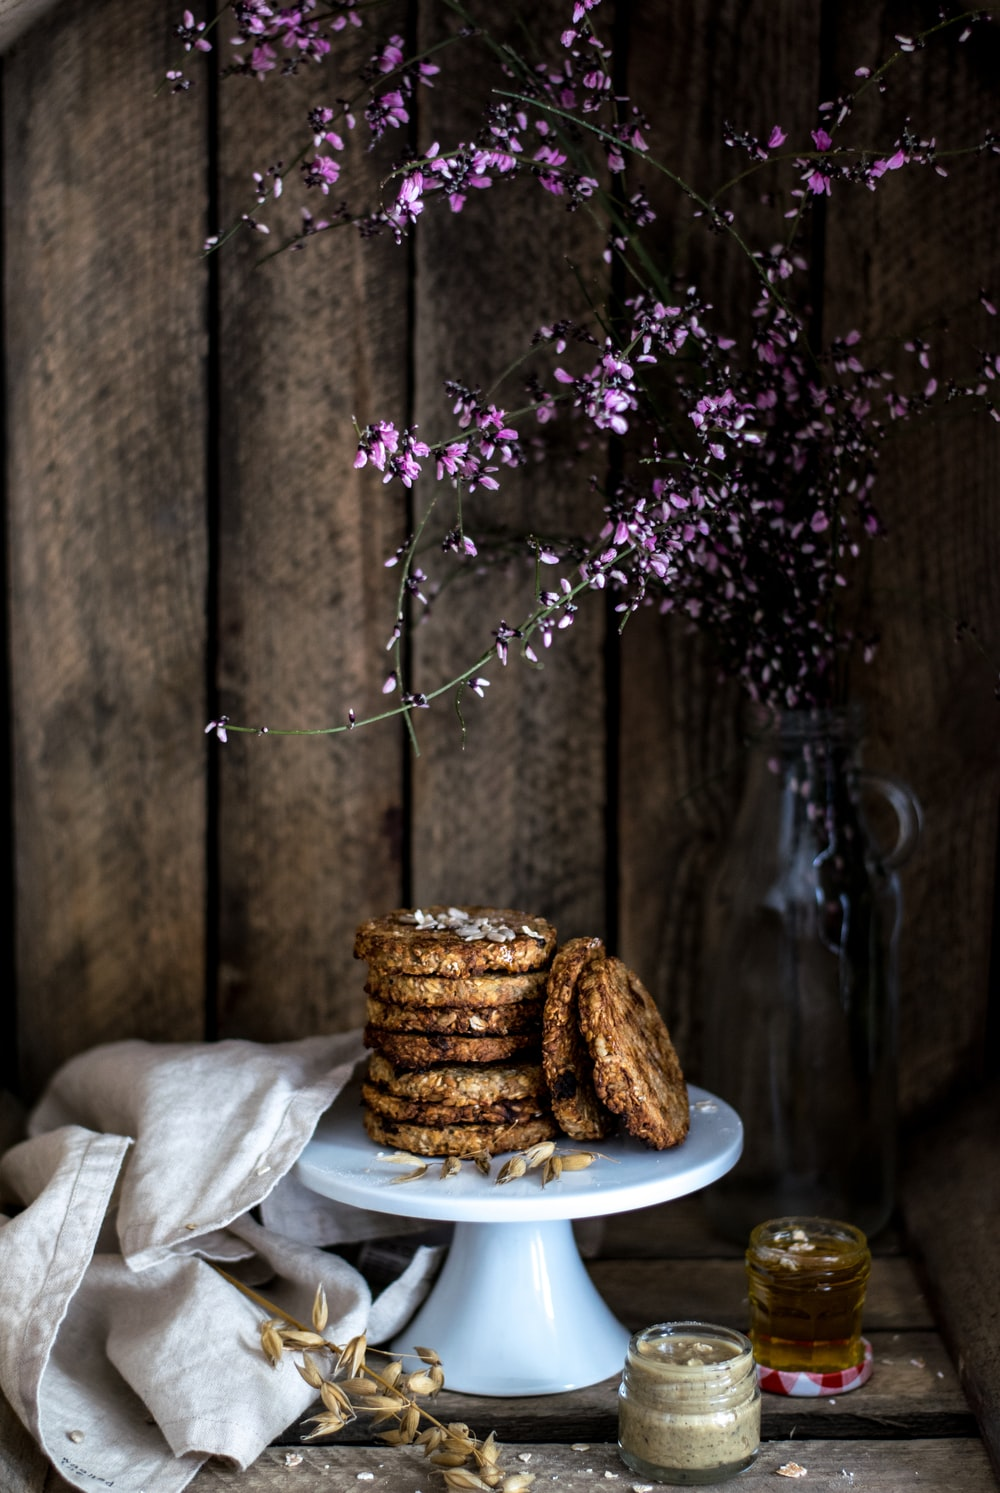 cookies on top of white ceramic footed tray